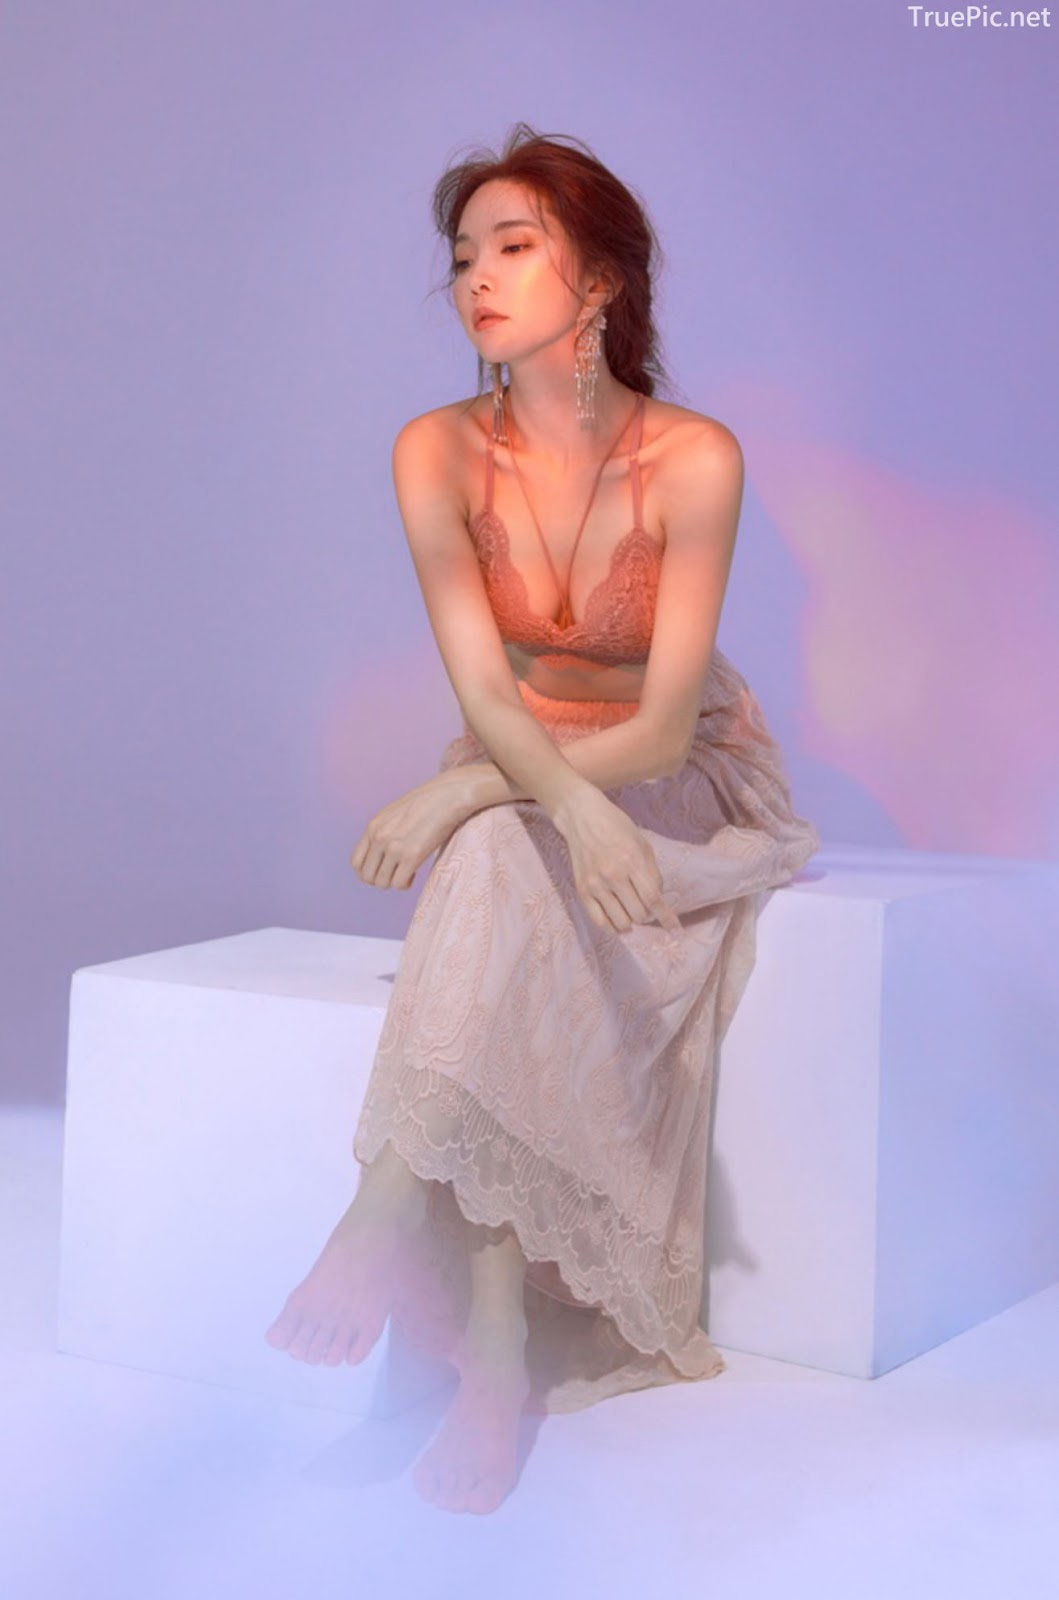 Korean model and fashion - Park Soo Yeon - Off-White Lavender and Salmon Pink Bra - Picture 6